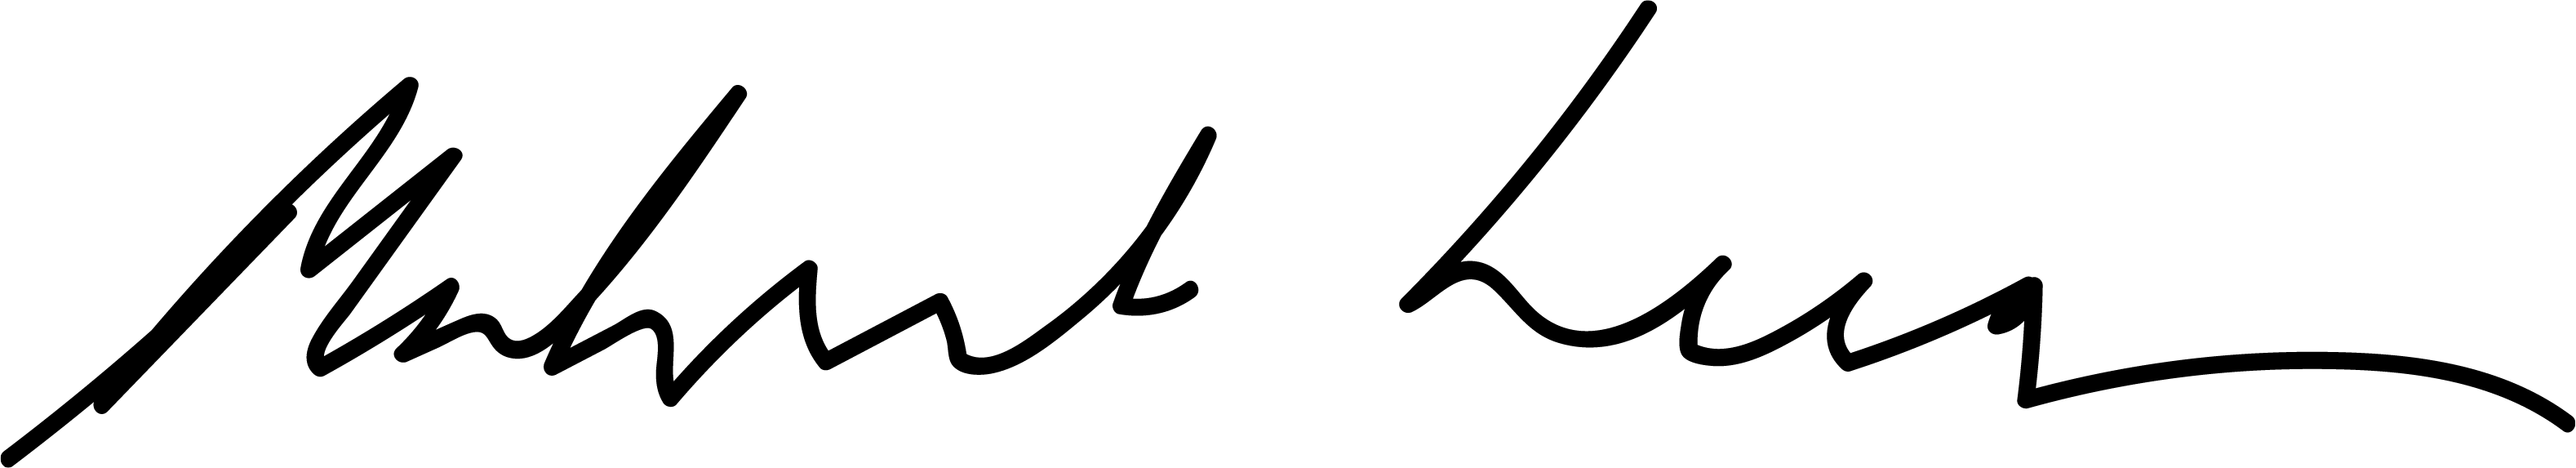 Michael Keenan signature